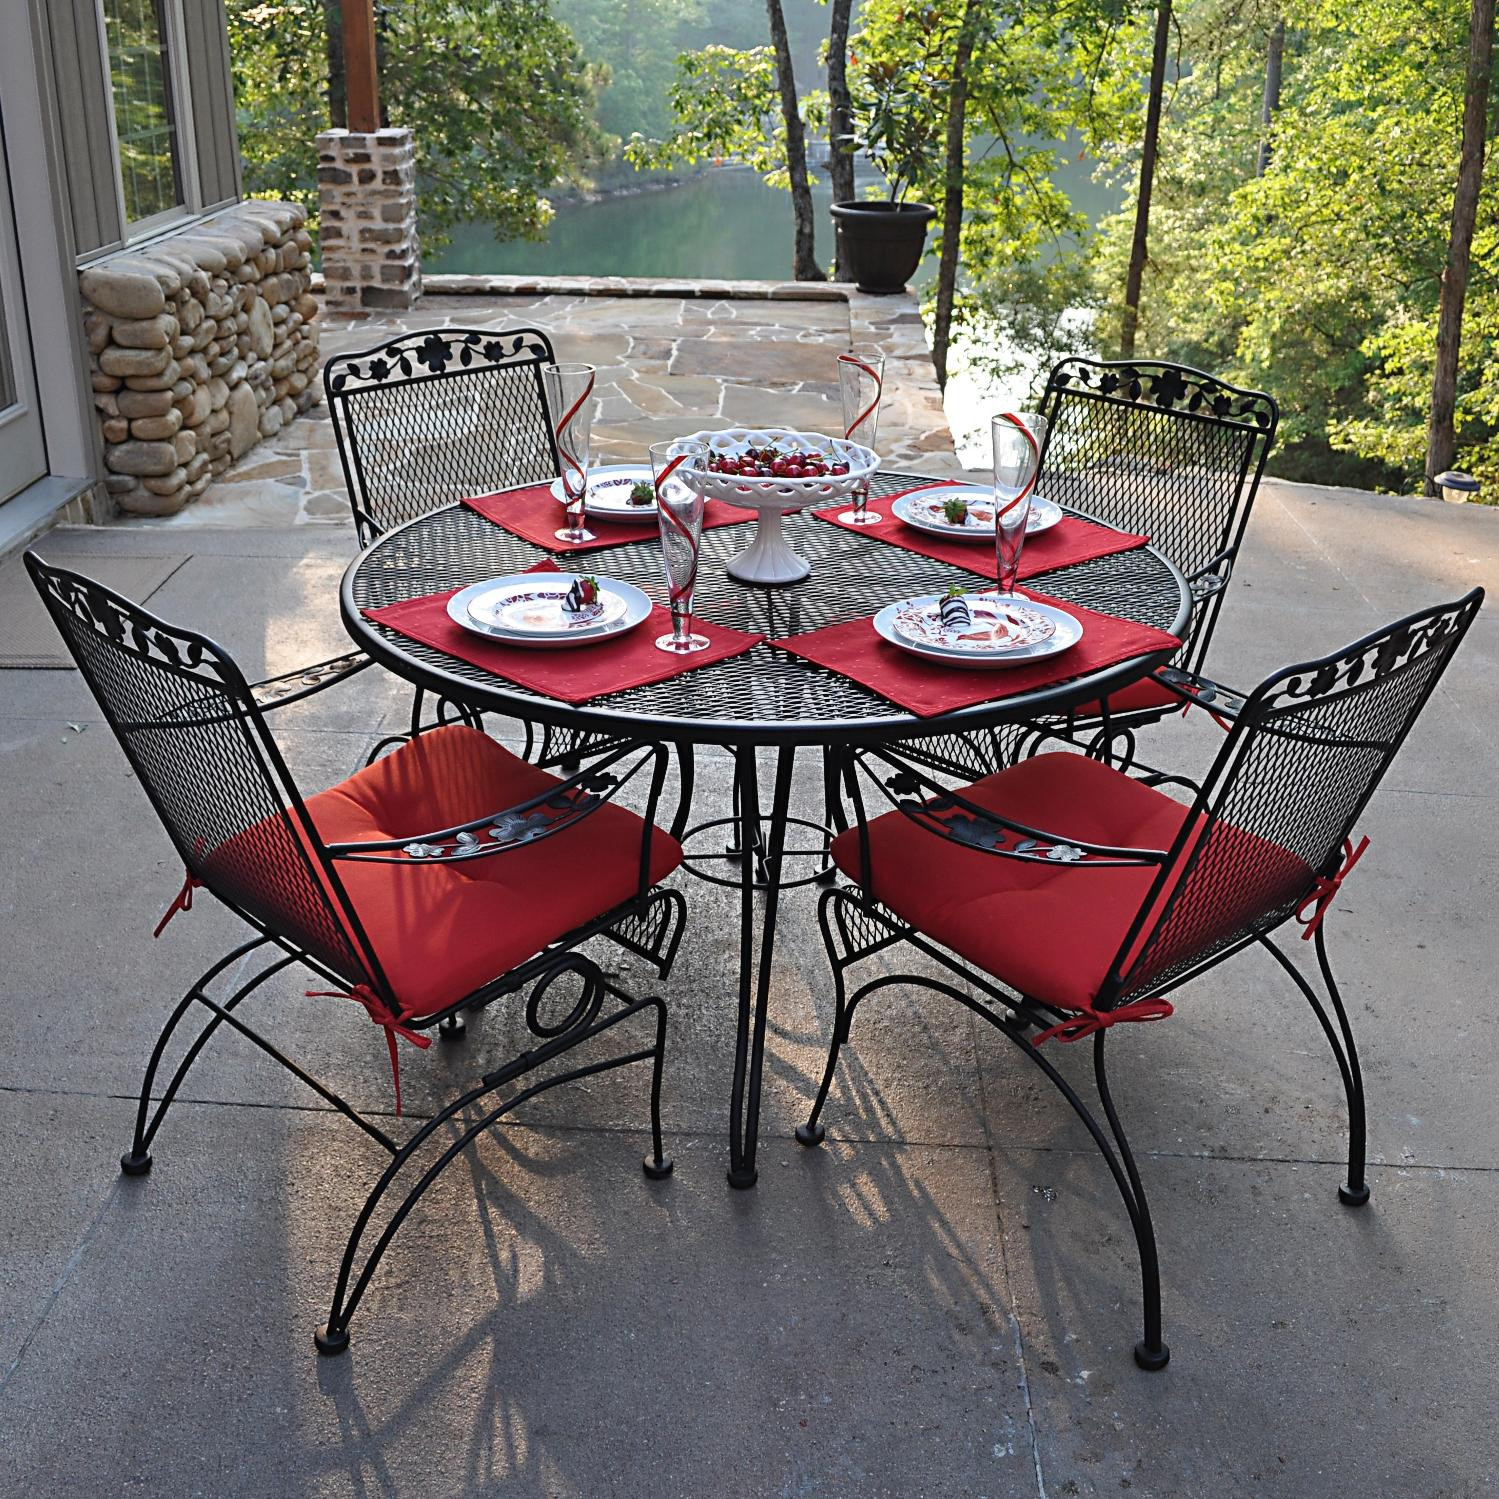 Best ideas about Wrought Iron Patio Furniture . Save or Pin Rod Iron Patio Set Now.